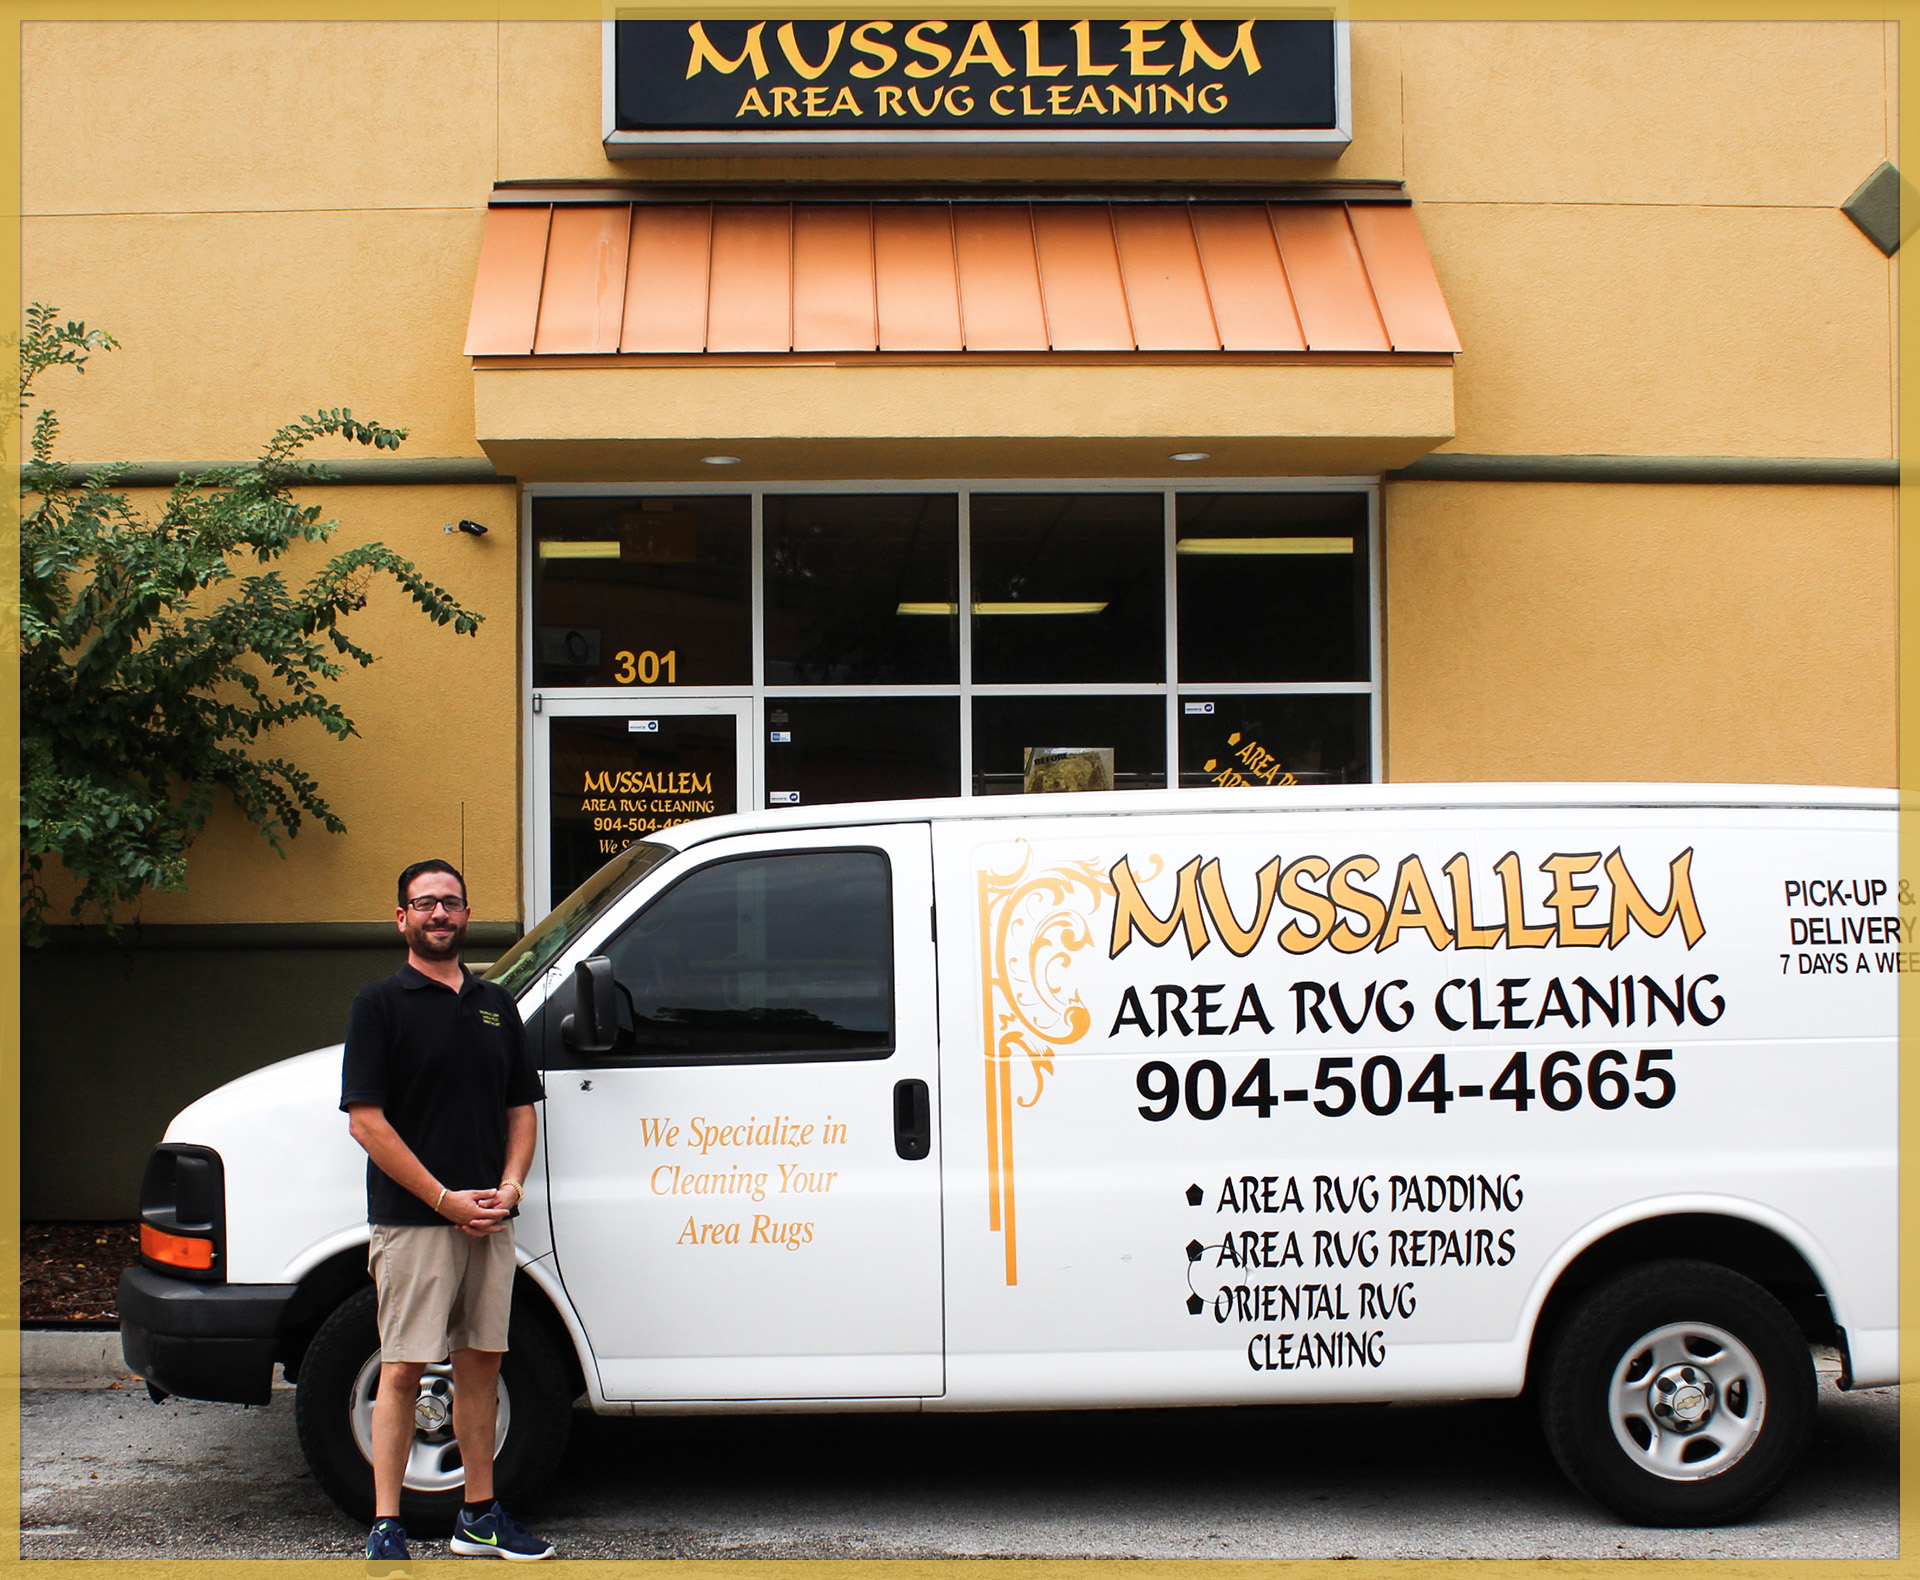 Why Hire A Rug Cleaning Service